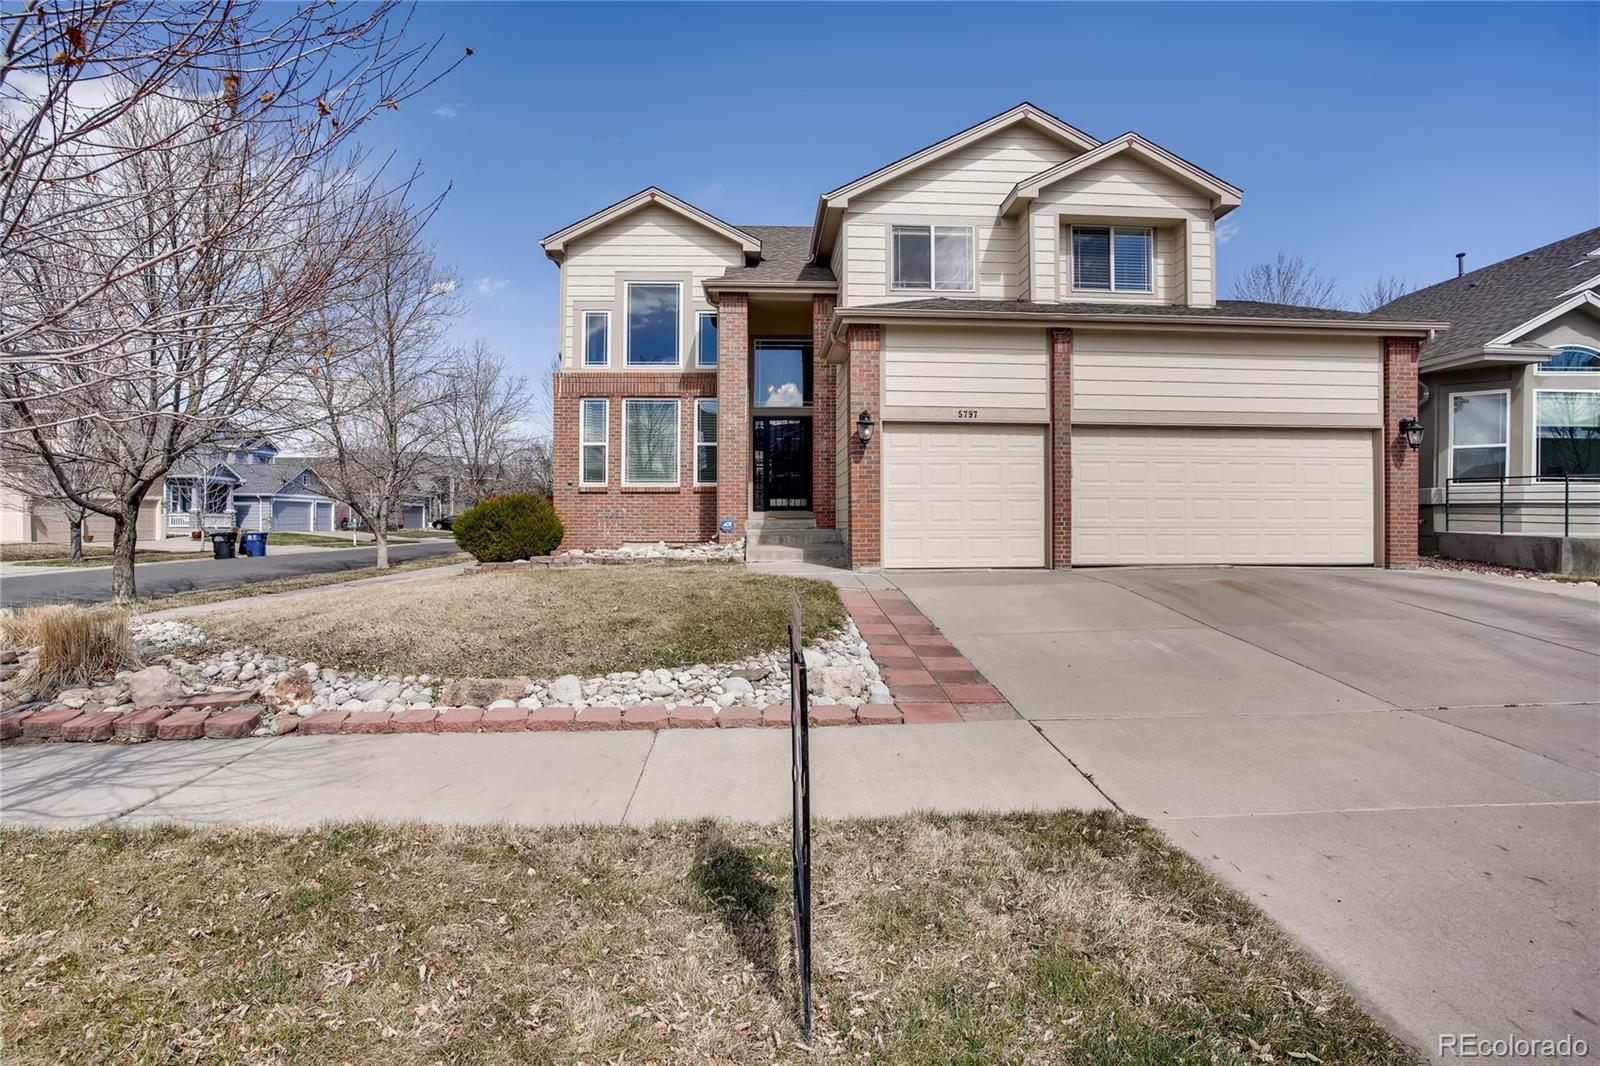 MLS# 6360296 - 1 - 5797 W Alamo Drive, Littleton, CO 80123